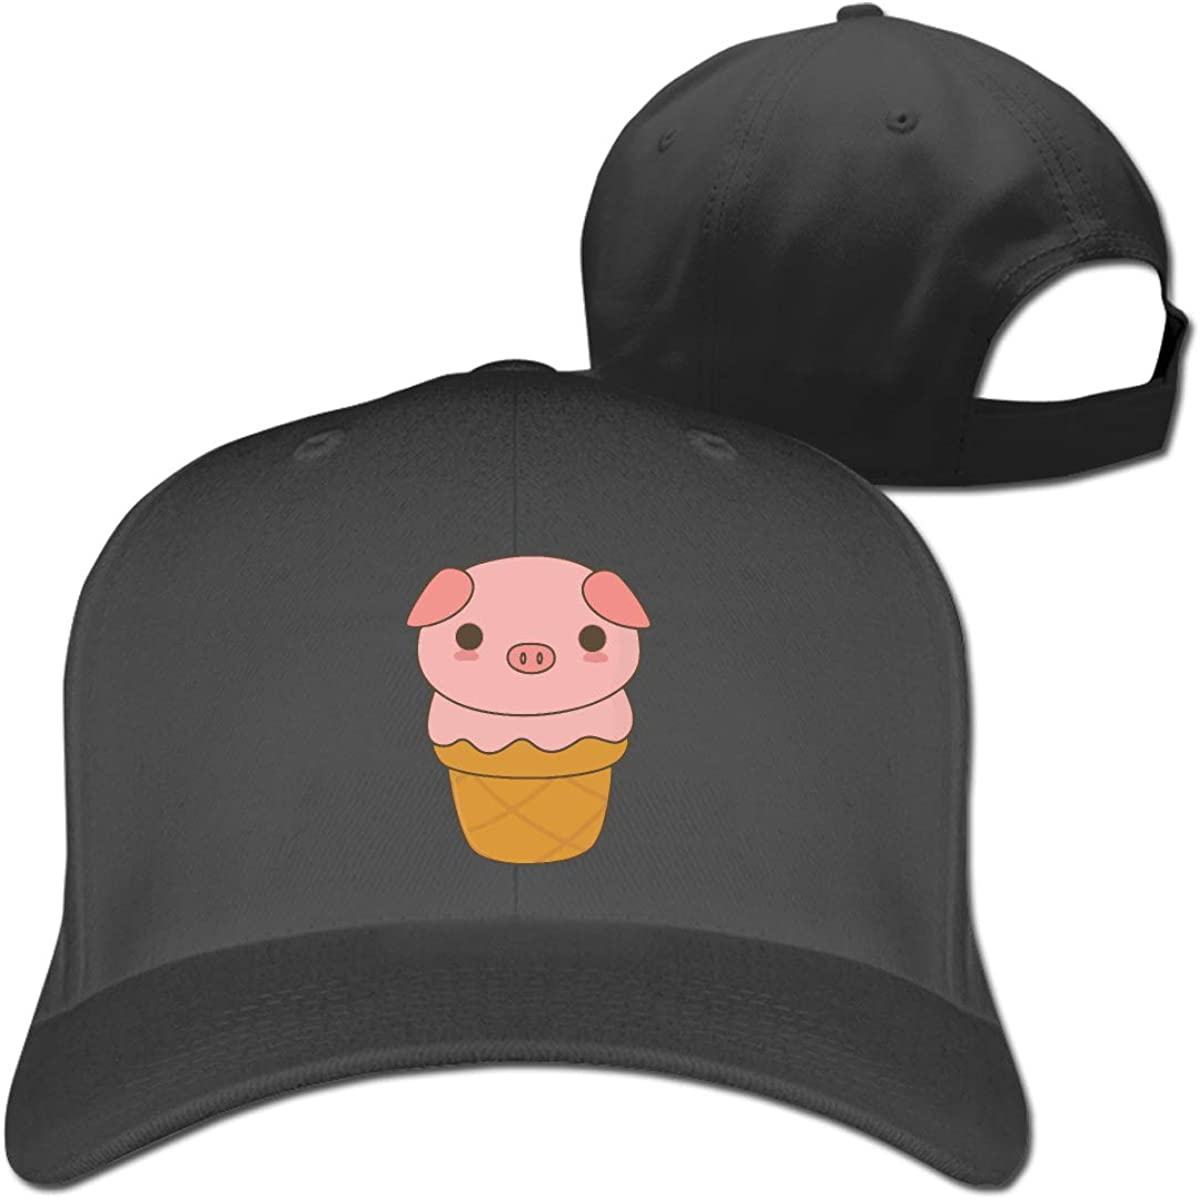 Cute Ice Cream Pig Classic Adjustable Cotton Baseball Caps Trucker Driver Hat Outdoor Cap Fitted Hats Dad Hat Black